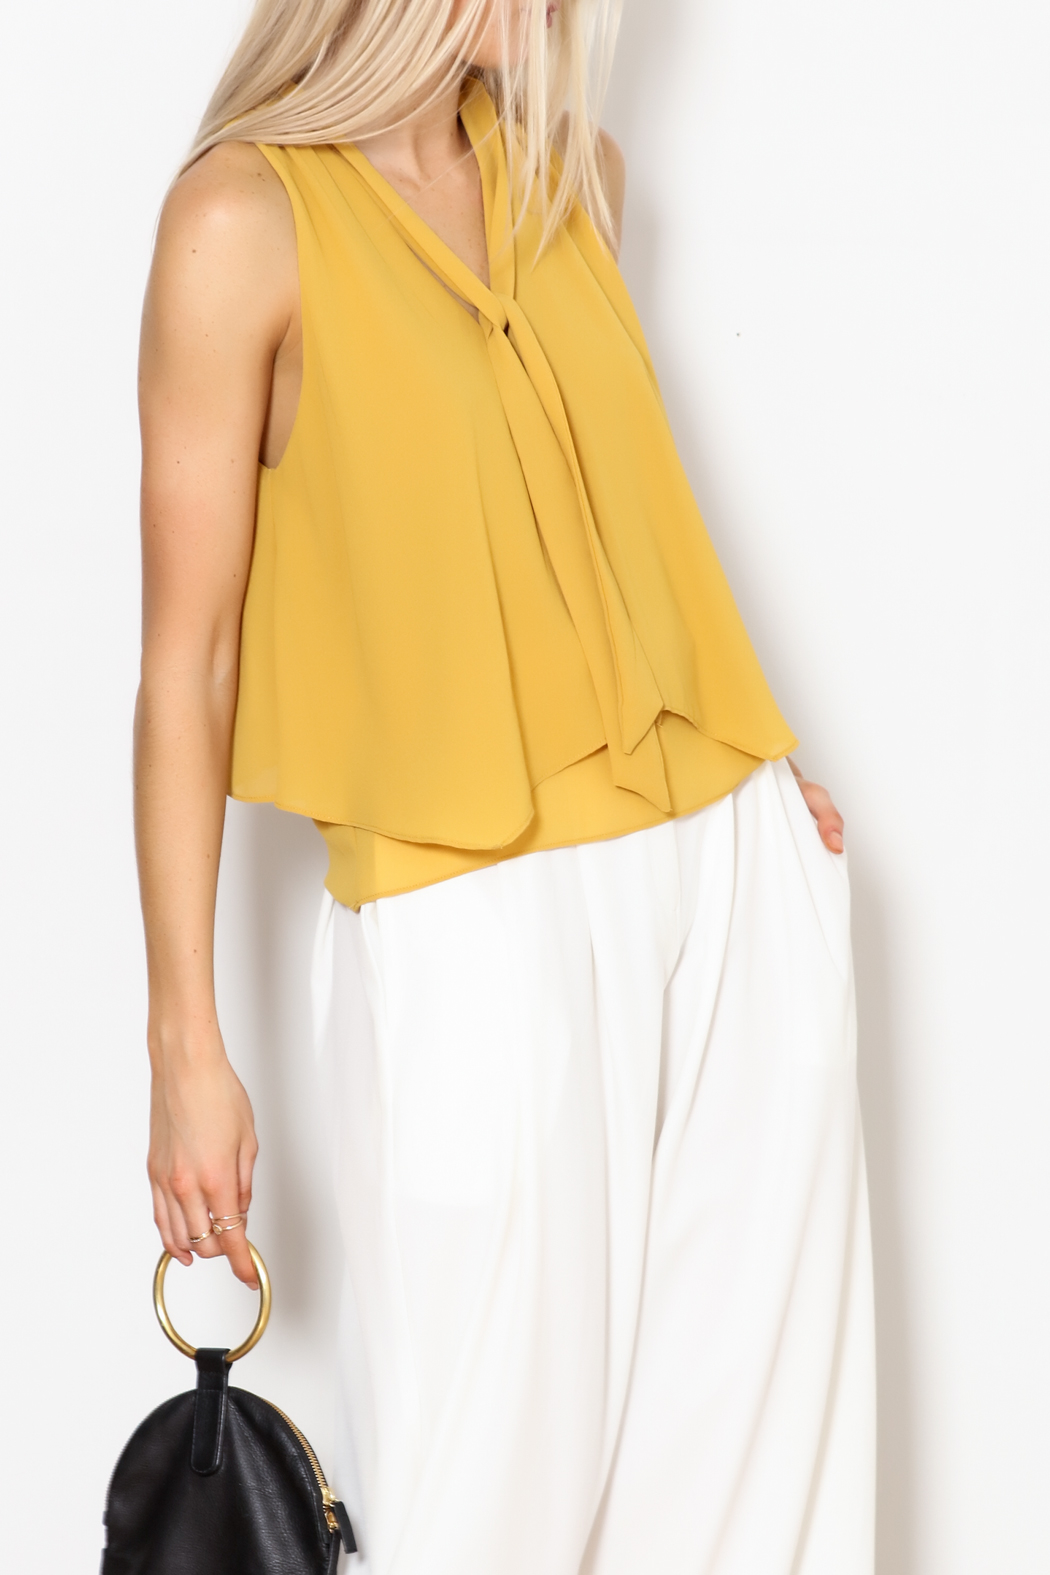 Tie Front Blouse by Dor L'dor, New York City